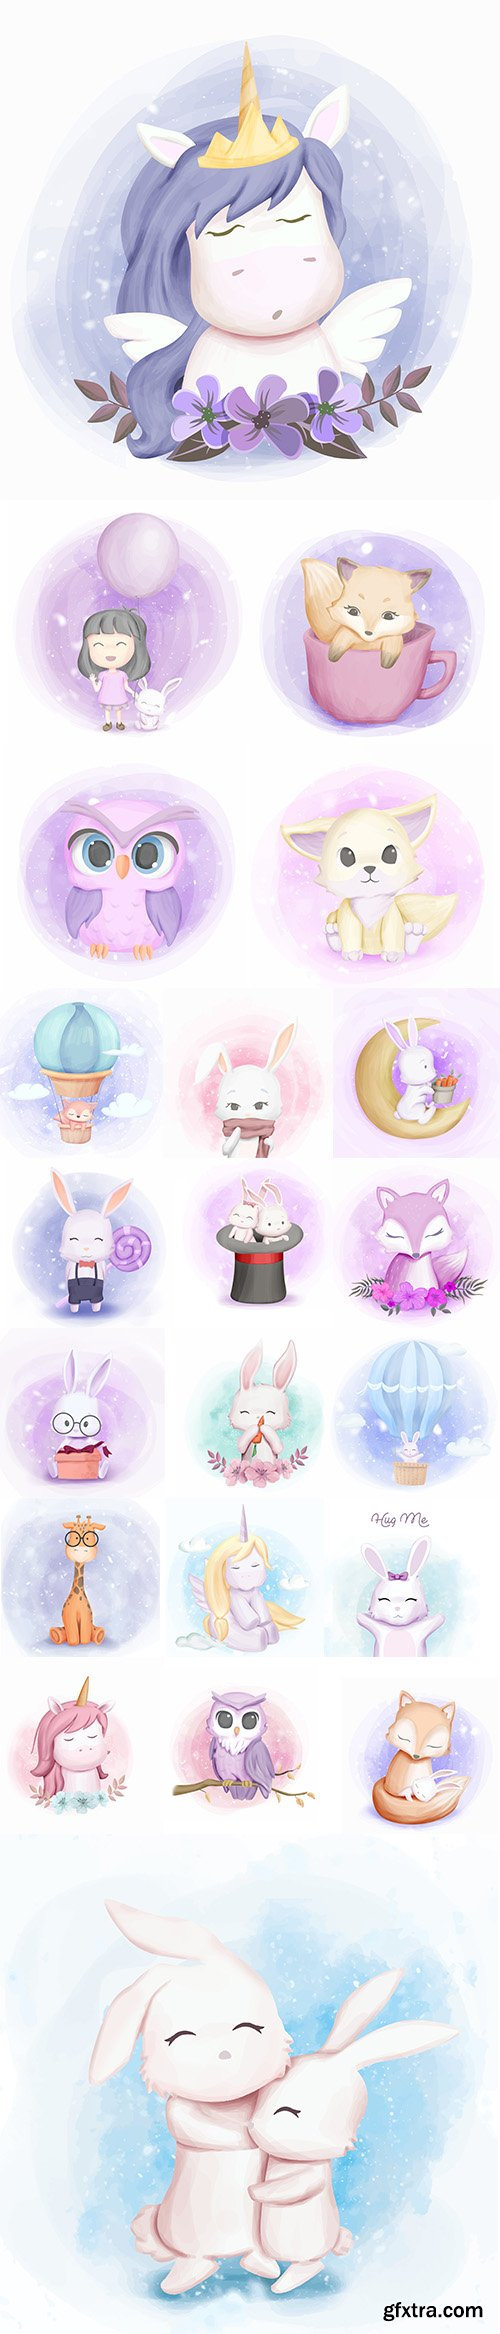 Hand Draw Lovely Cute Watercolor Animal Pack 4